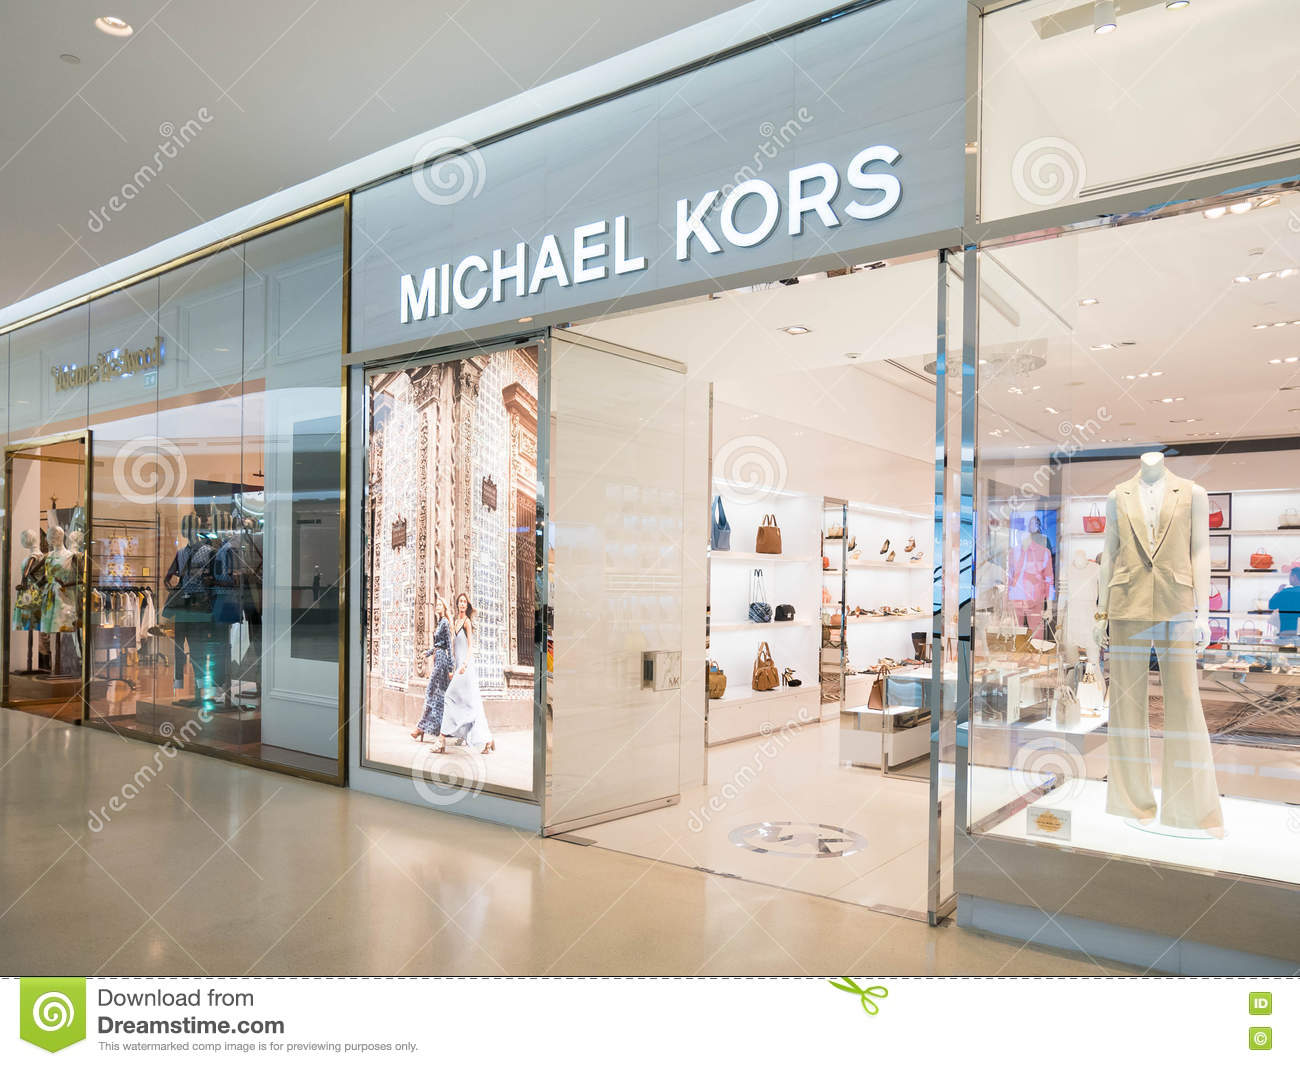 Michael Kors Handbags Clearance Sale 75% off! Michael Kors handbags are designed with an elegant shape which is superb for a shoulder carry and superbags!